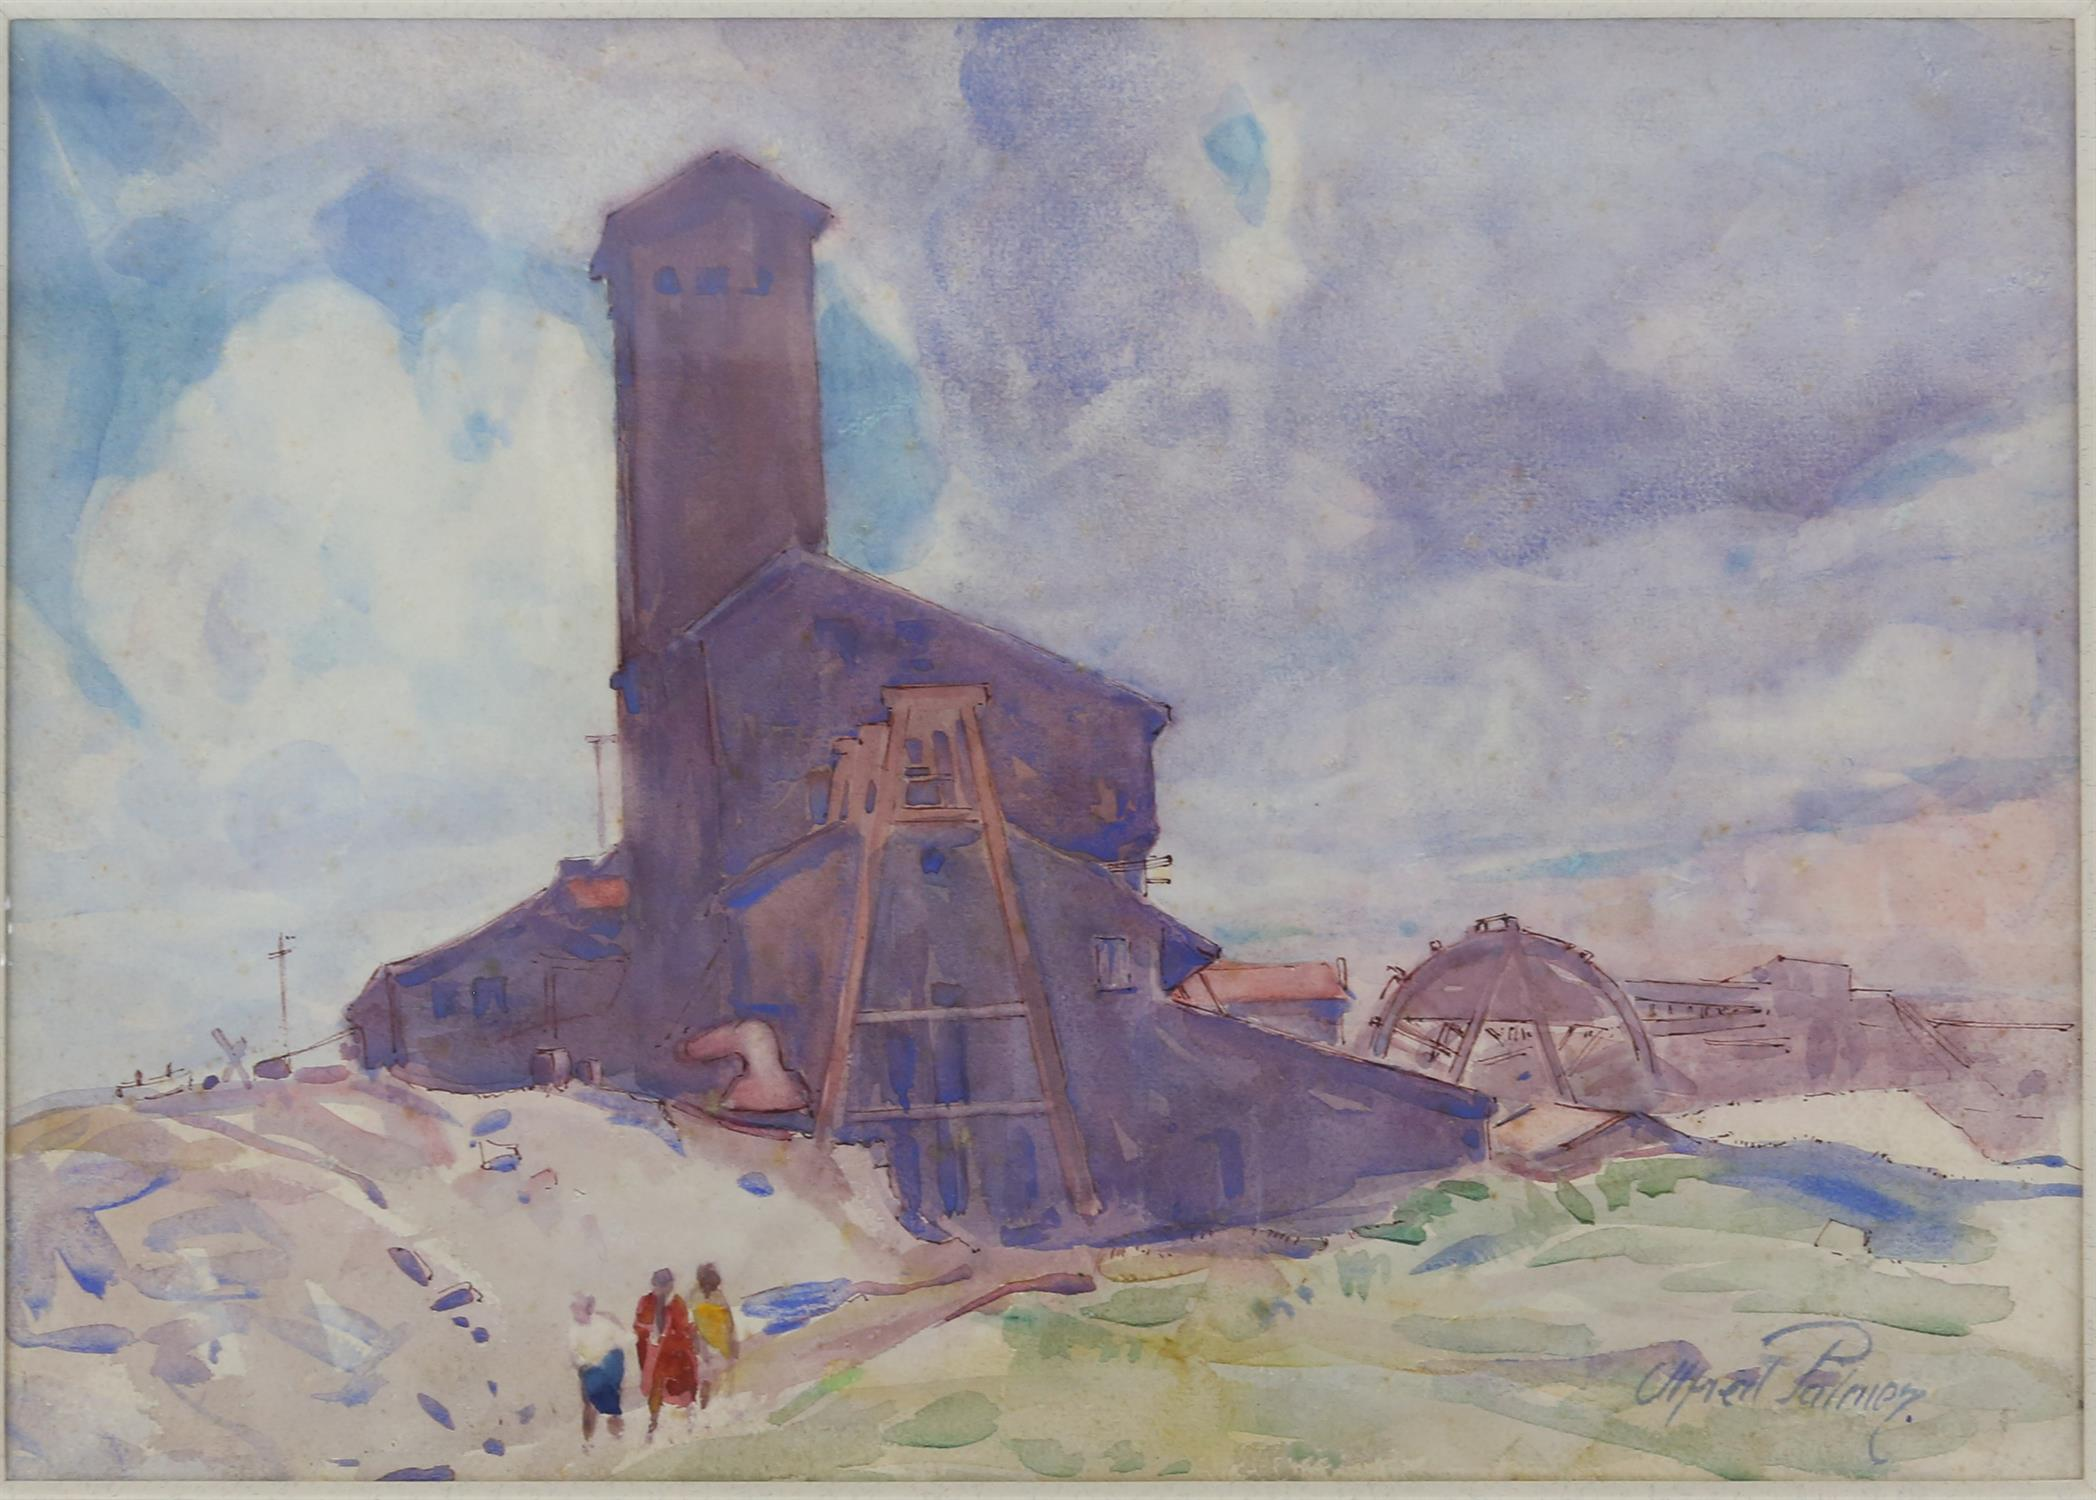 Alfred Palmer (British,1877-1951). Figures by a Tall building. Watercolour, signed lower right 26 x